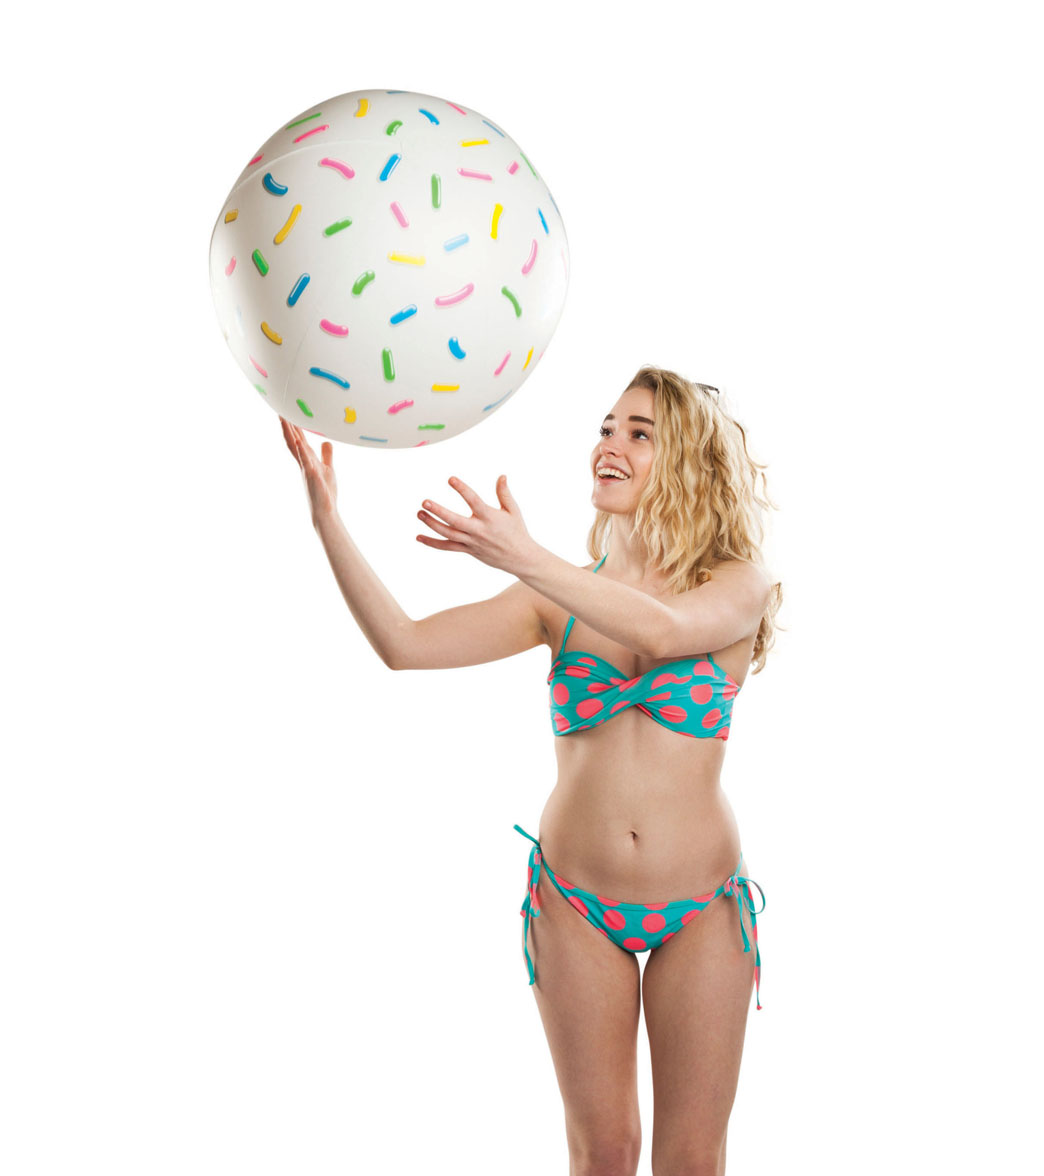 30c0208581 Big Mouth Toys Giant Donut Hole Beach Ball at SwimOutlet.com